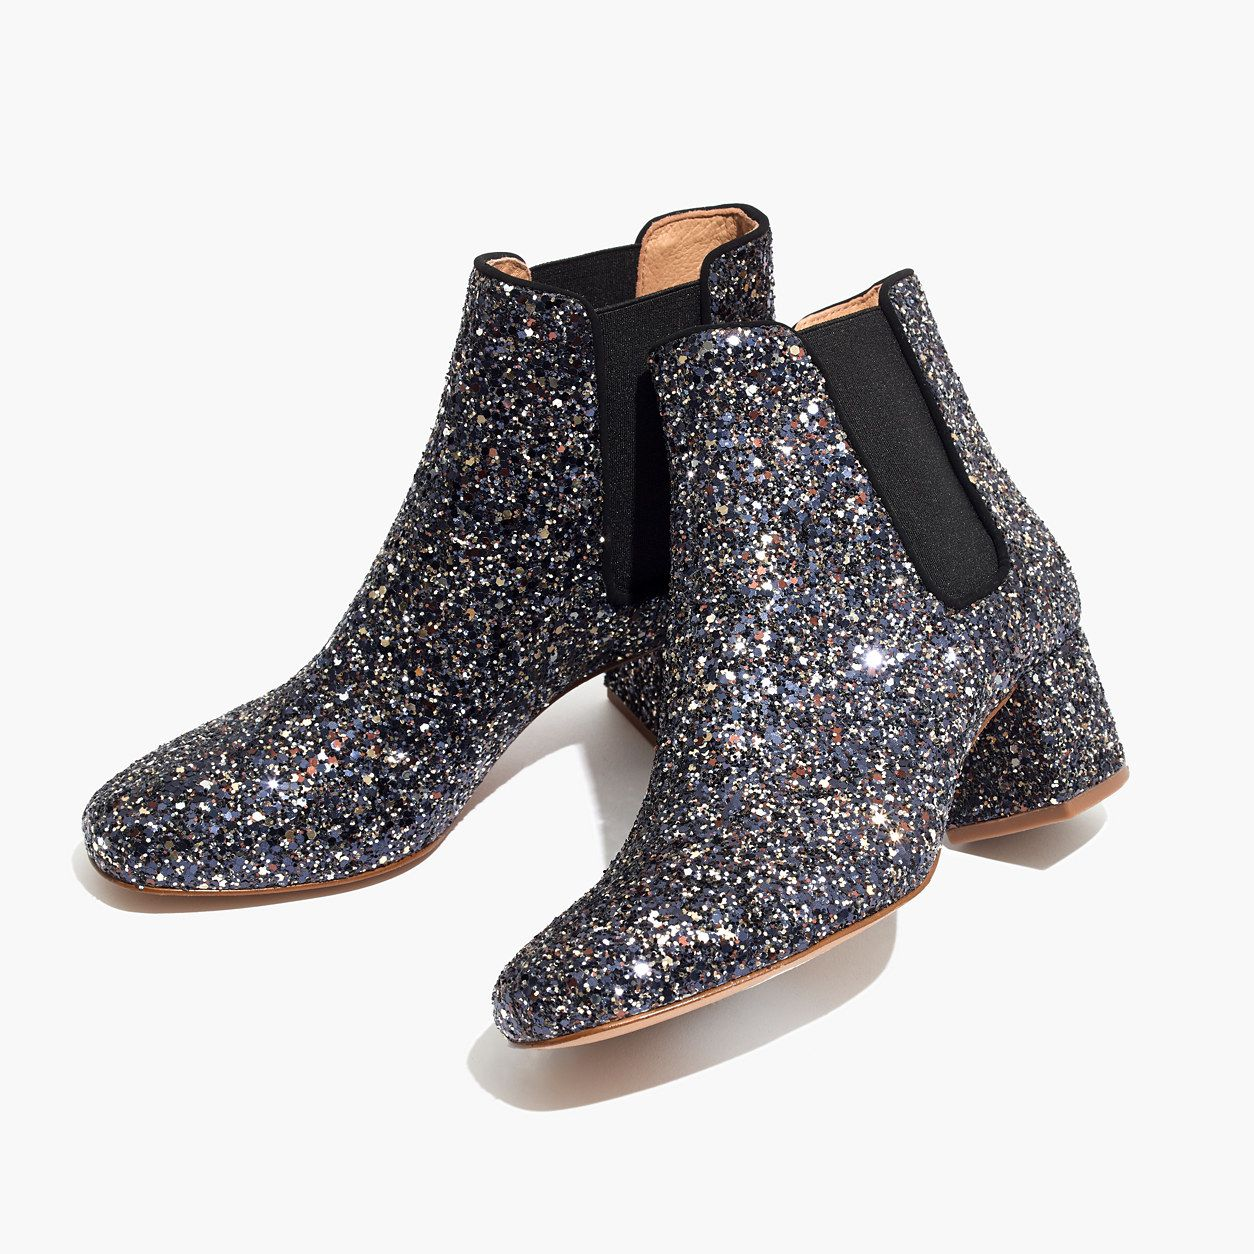 Madewell The Walker Chelsea Boot In